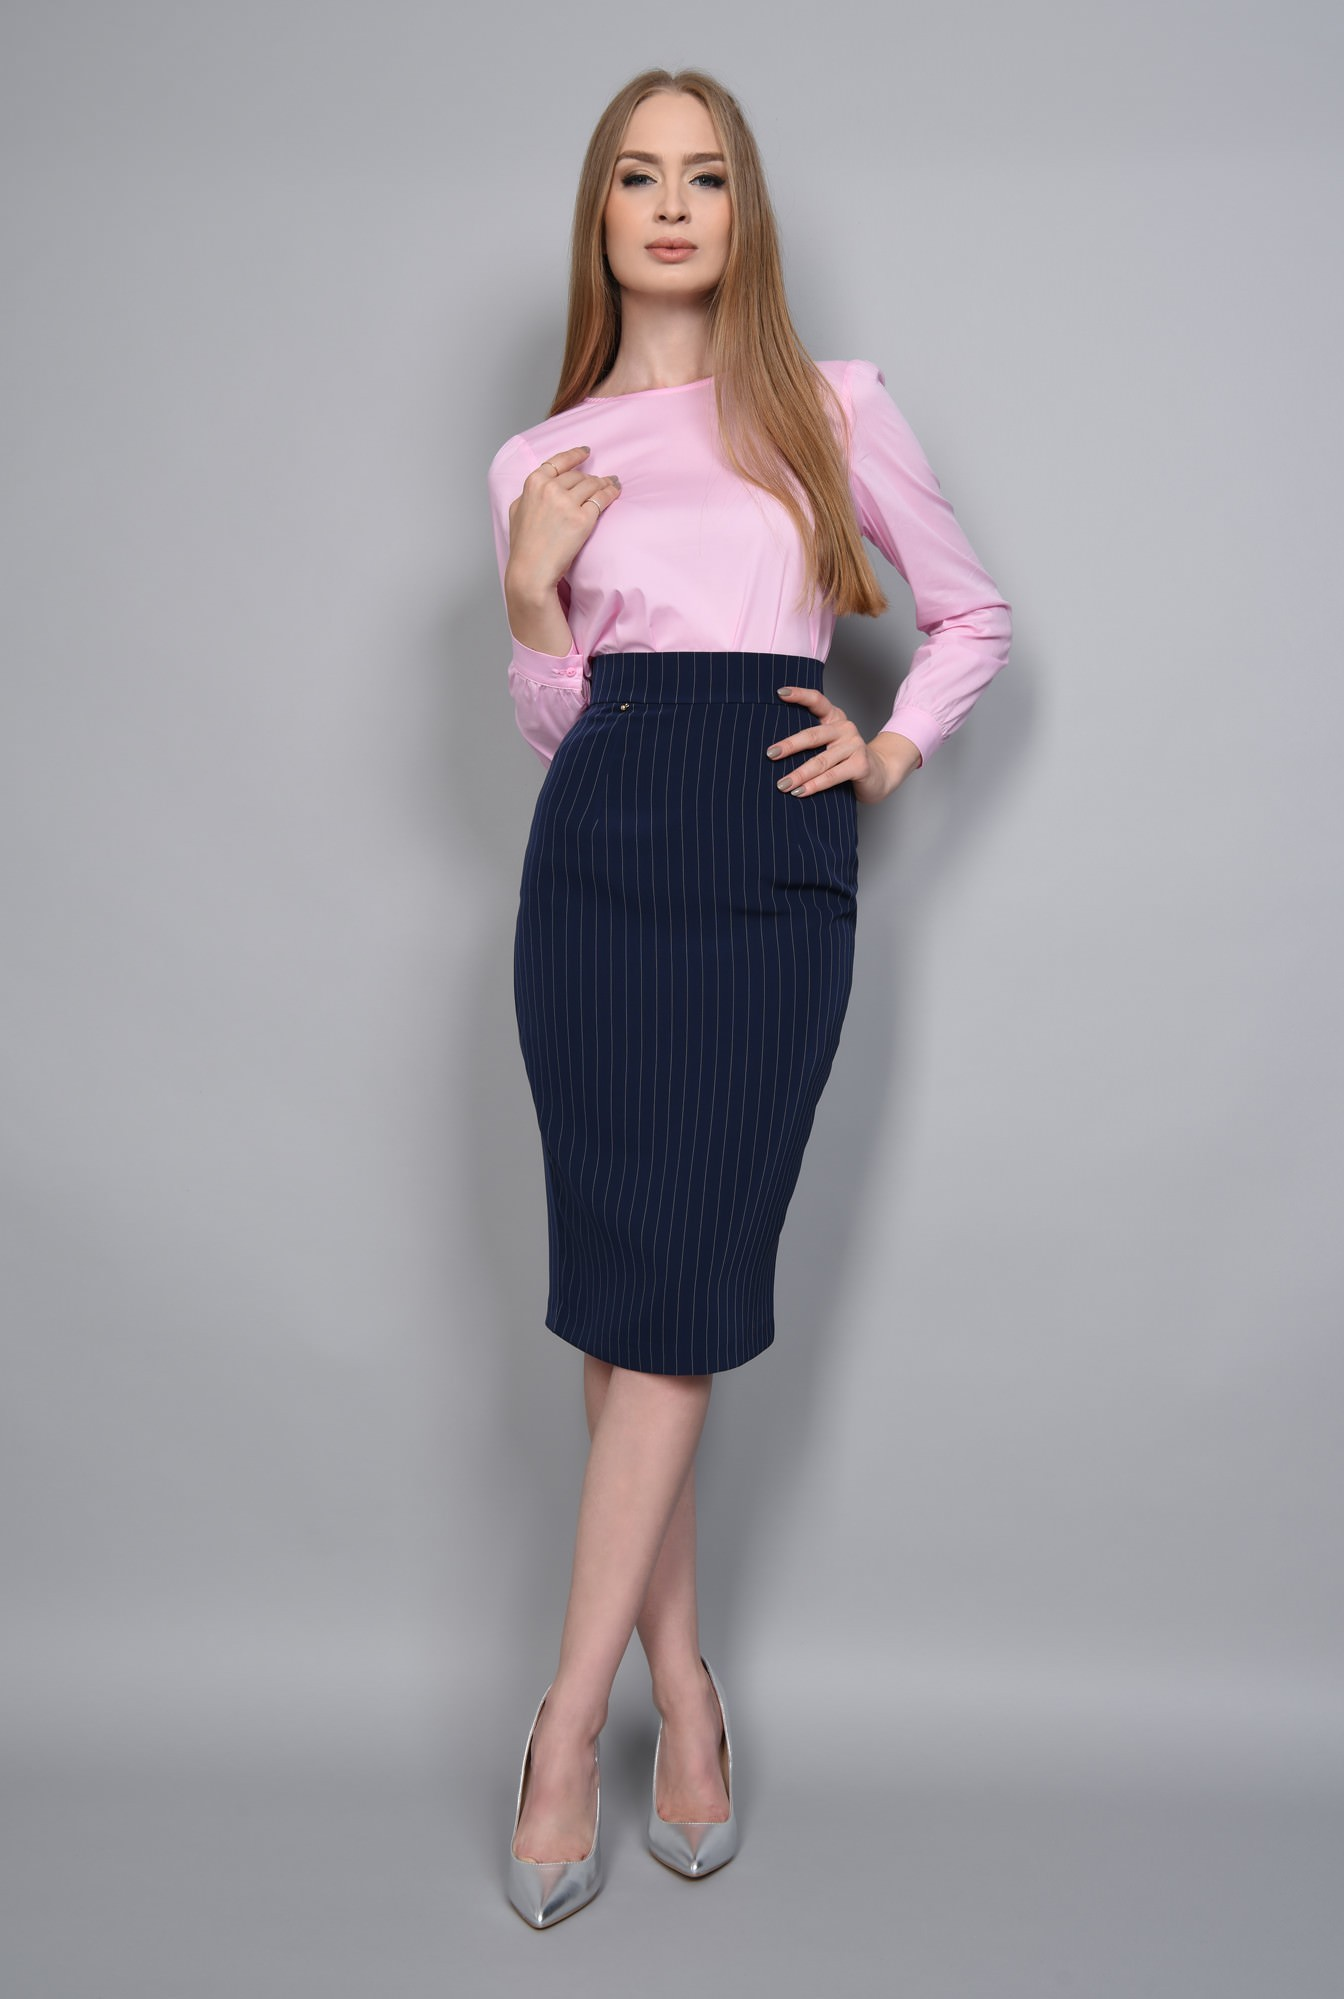 3 - BLUZA OFFICE BL 267-ROZ